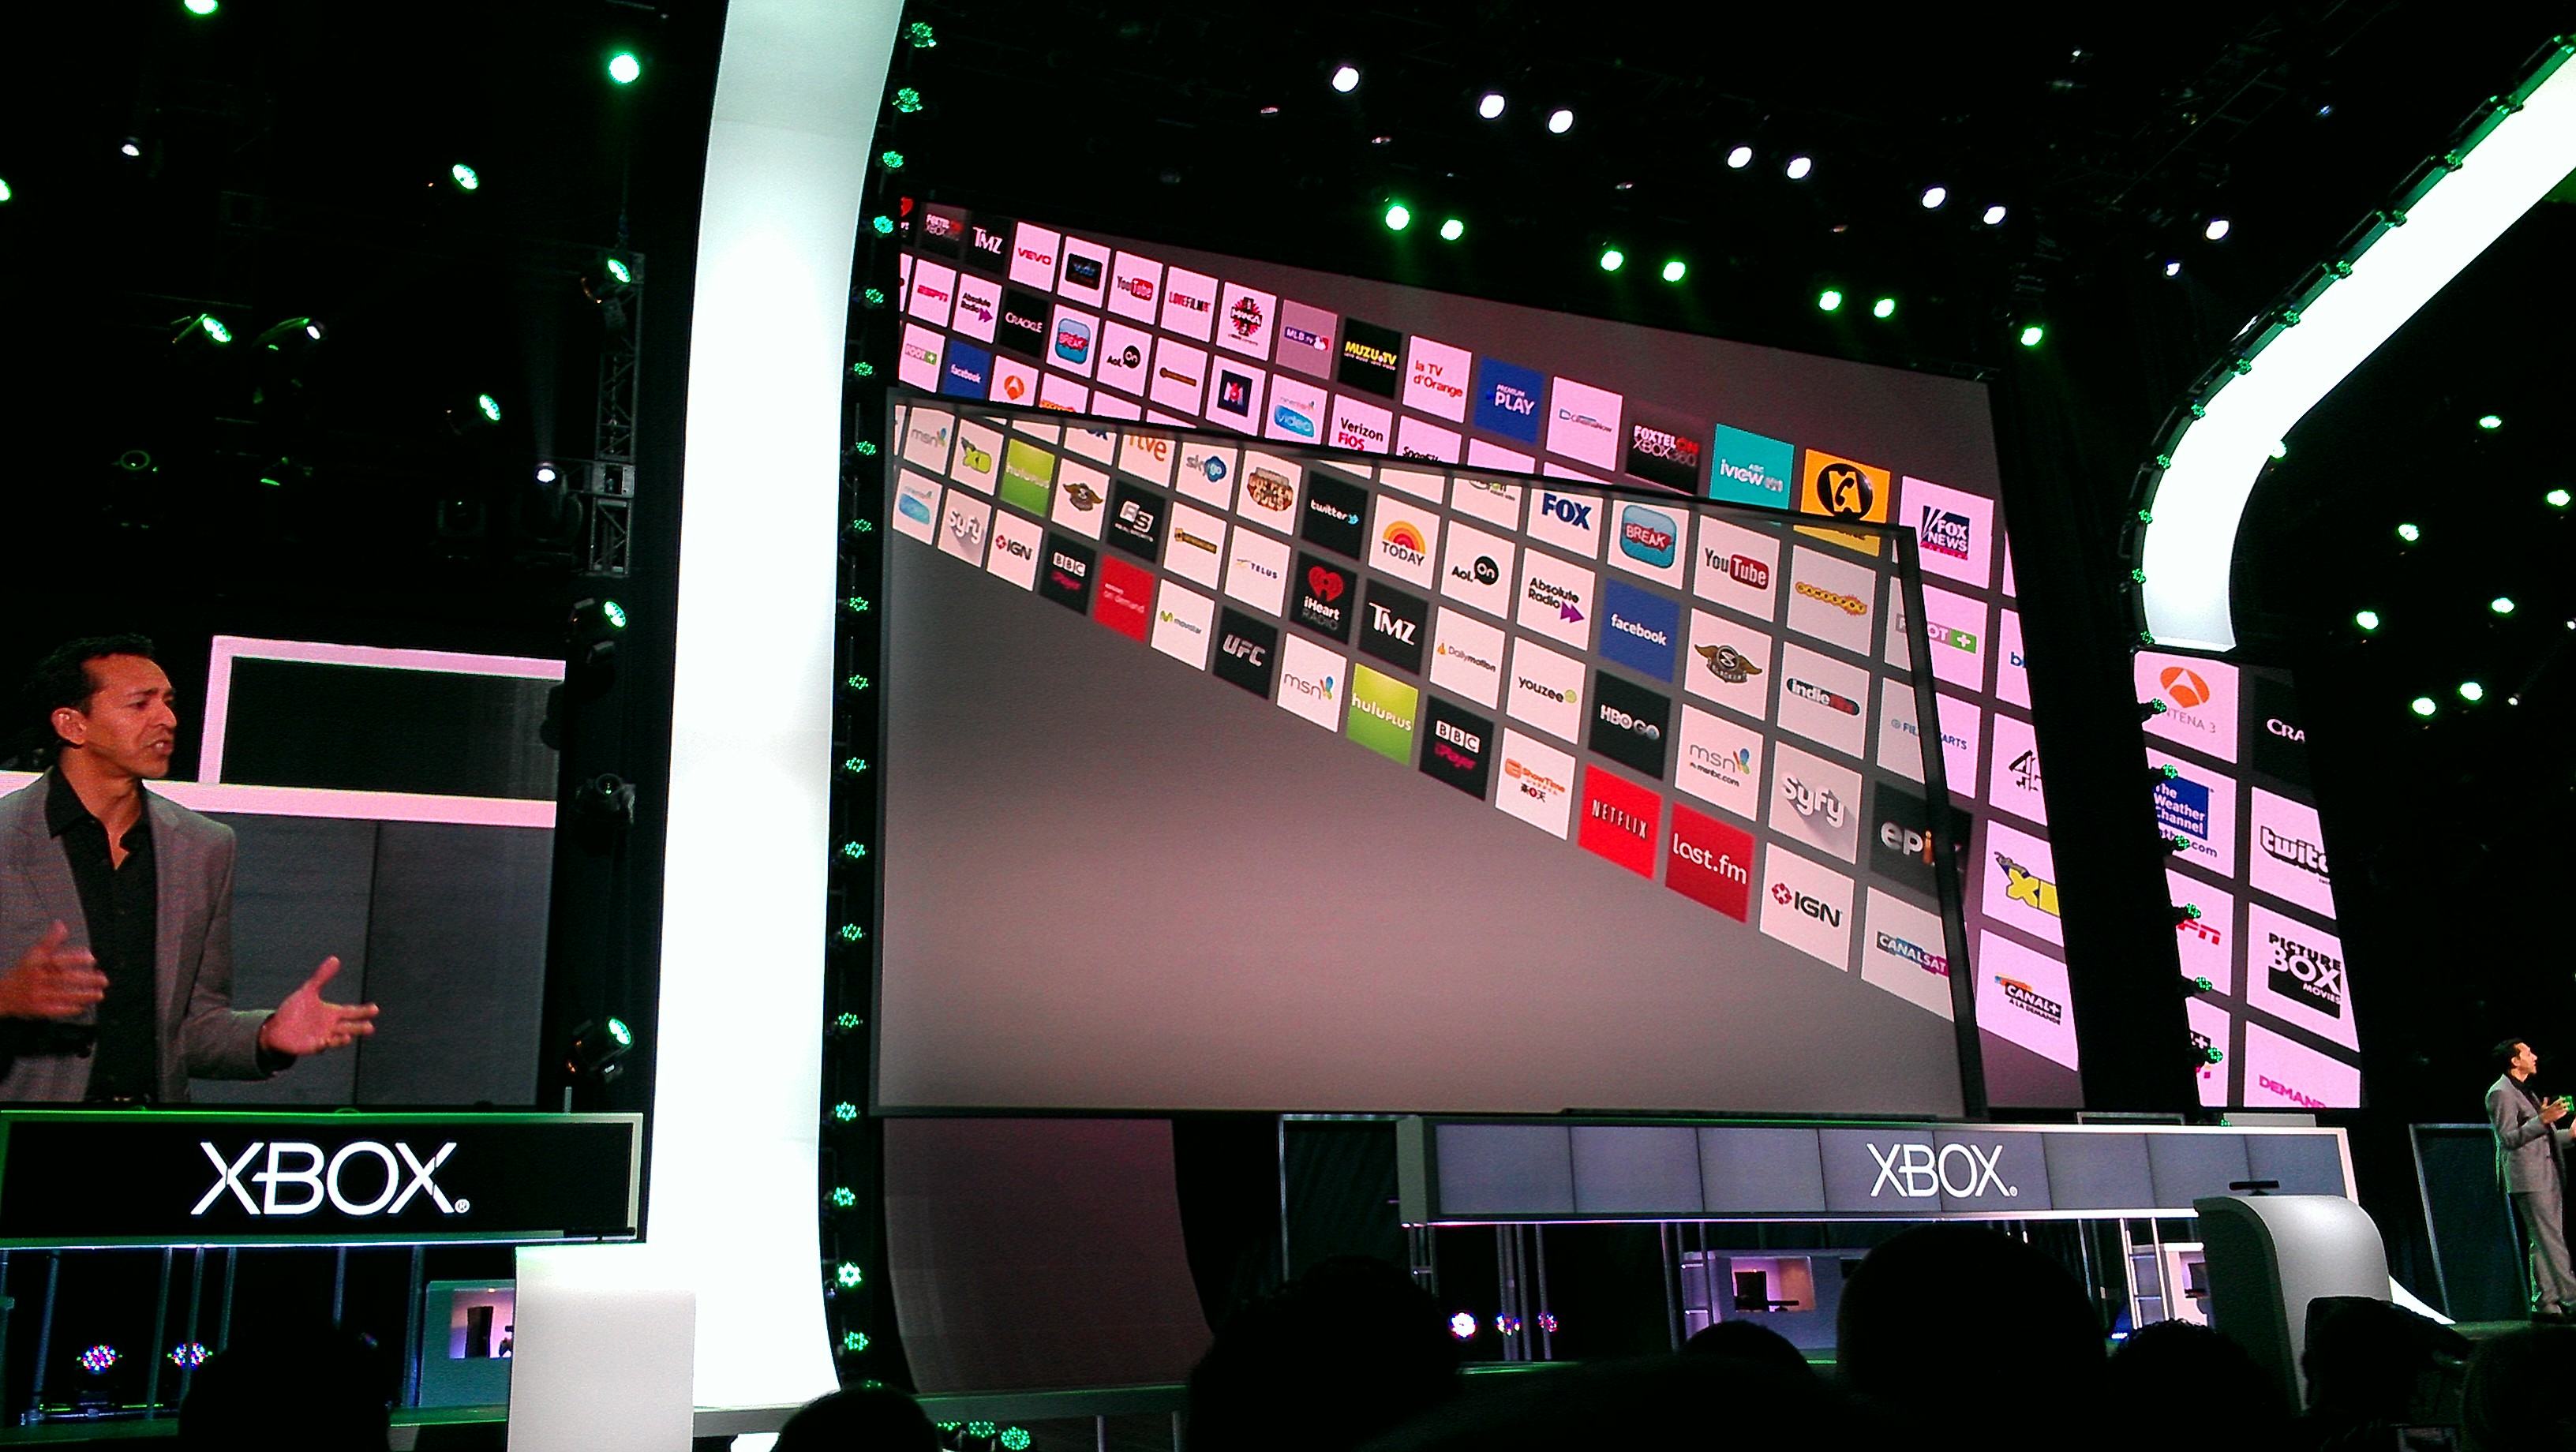 The Xbox 360 Gets Reloaded with Even More Media Partners